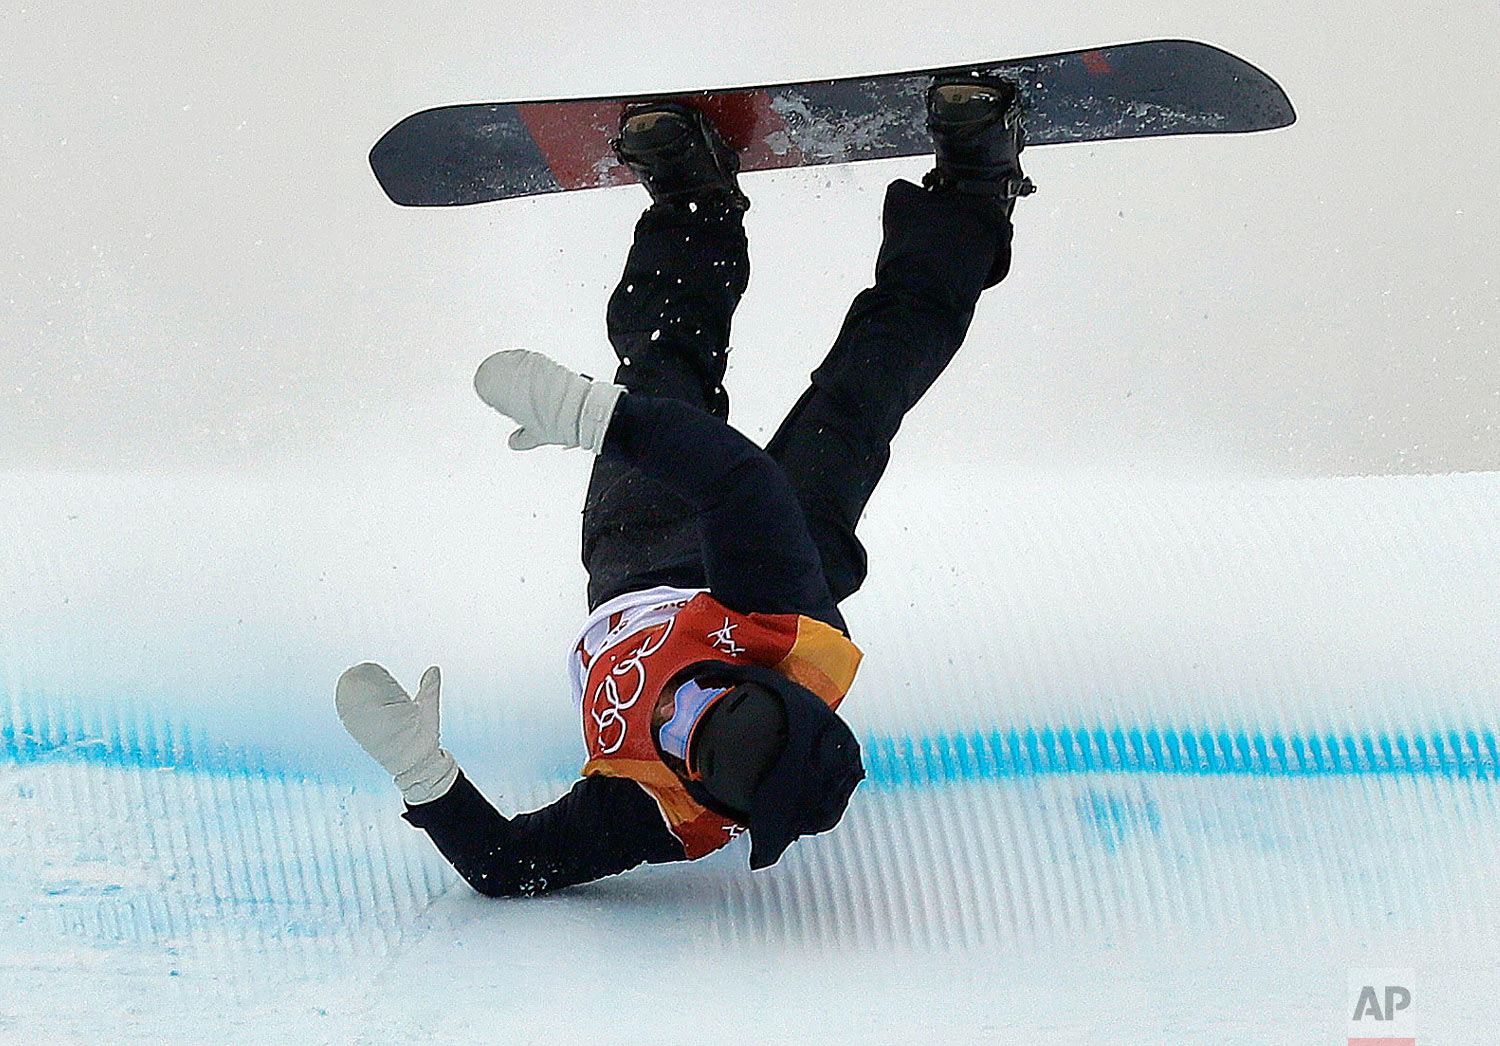 NiklasMattsson, of Sweden, crashes during the men's slopestyle qualifying at Phoenix Snow Park at the 2018 Winter Olympics in Pyeongchang, South Korea, Saturday, Feb. 10, 2018. (AP Photo/Kin Cheung)